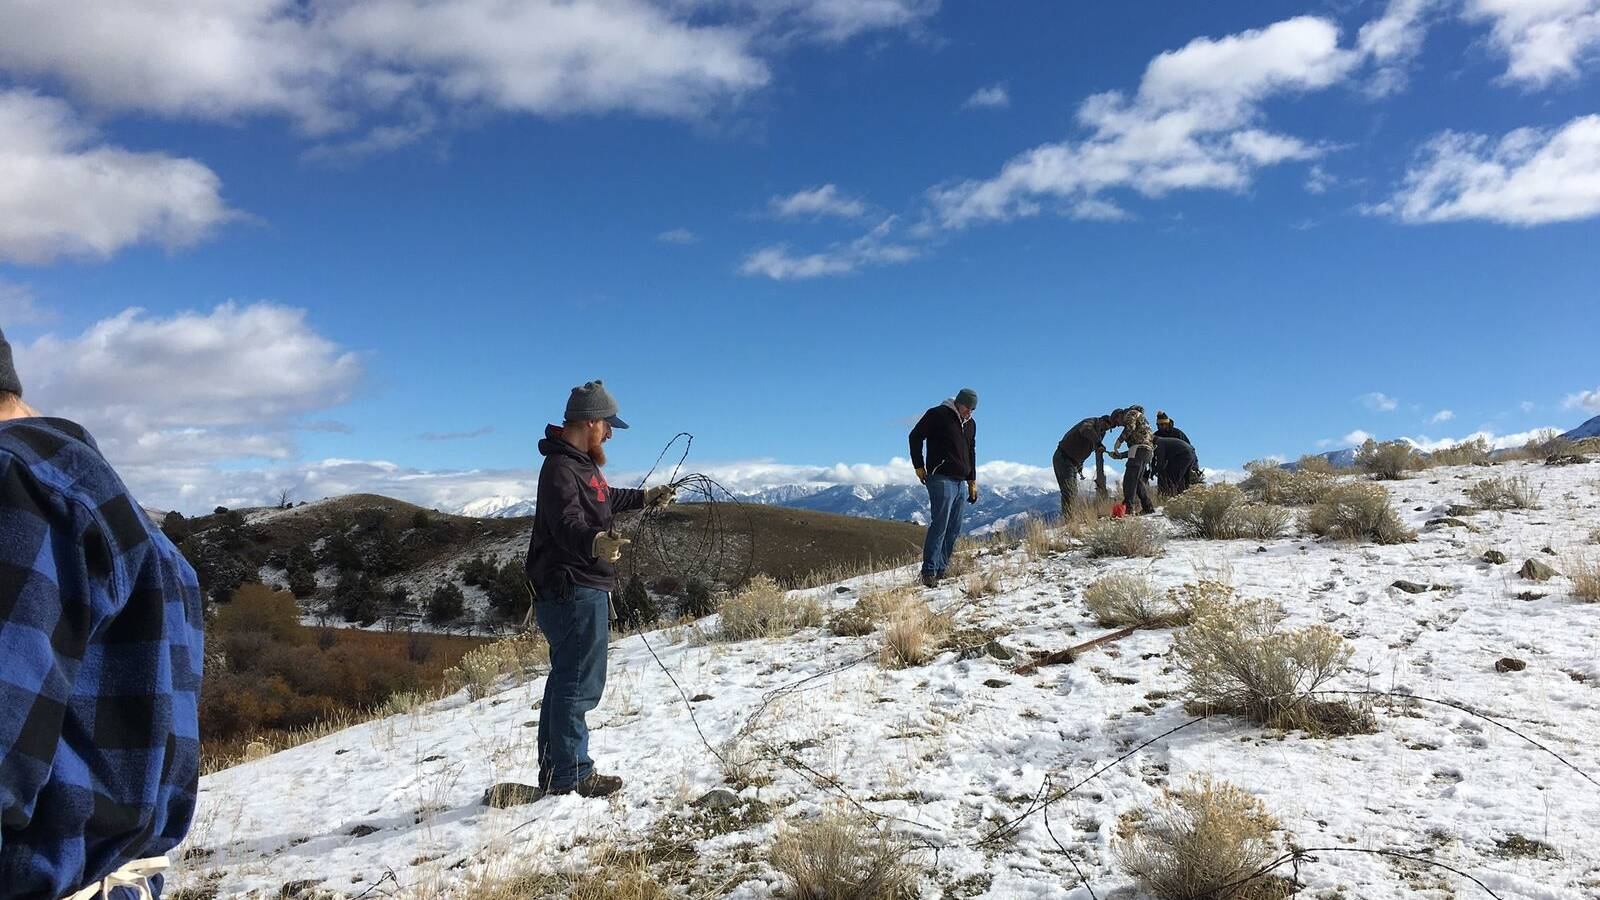 15 veterans from Montana State University worked to protect pronghorn antelope in the Greater Yellowstone Ecosystem by removing more than 2,300 feet of barbed wire fencing that inhibits the pronghorns' migratory path.